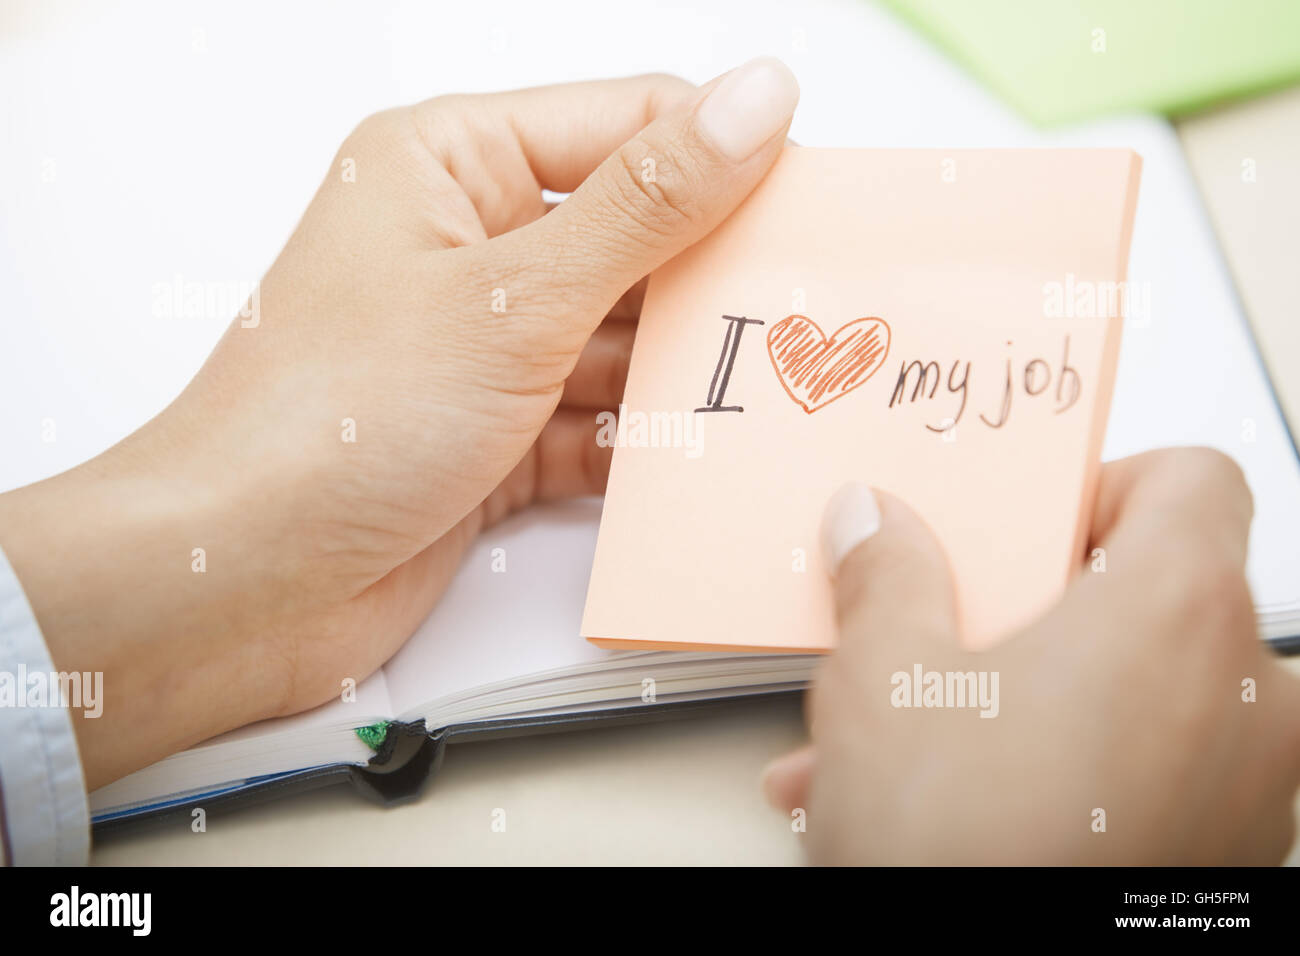 Hands holding sticky note with Love my job text Stock Photo